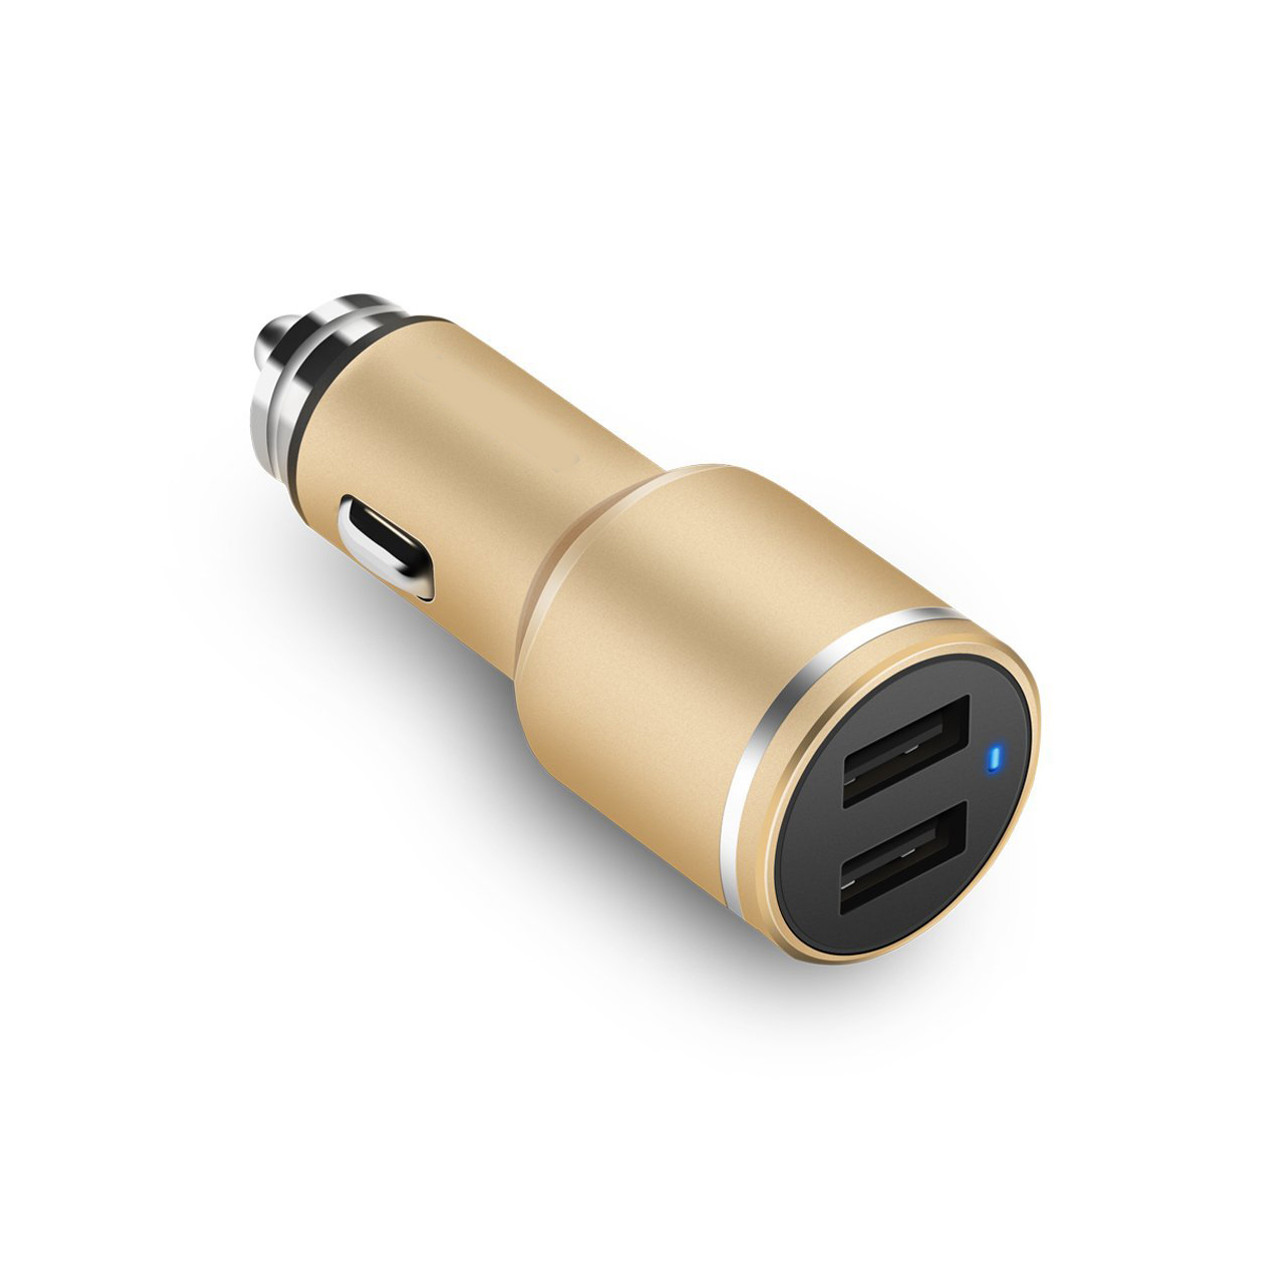 USB Car Charger 2 Port with 5V 2.4A